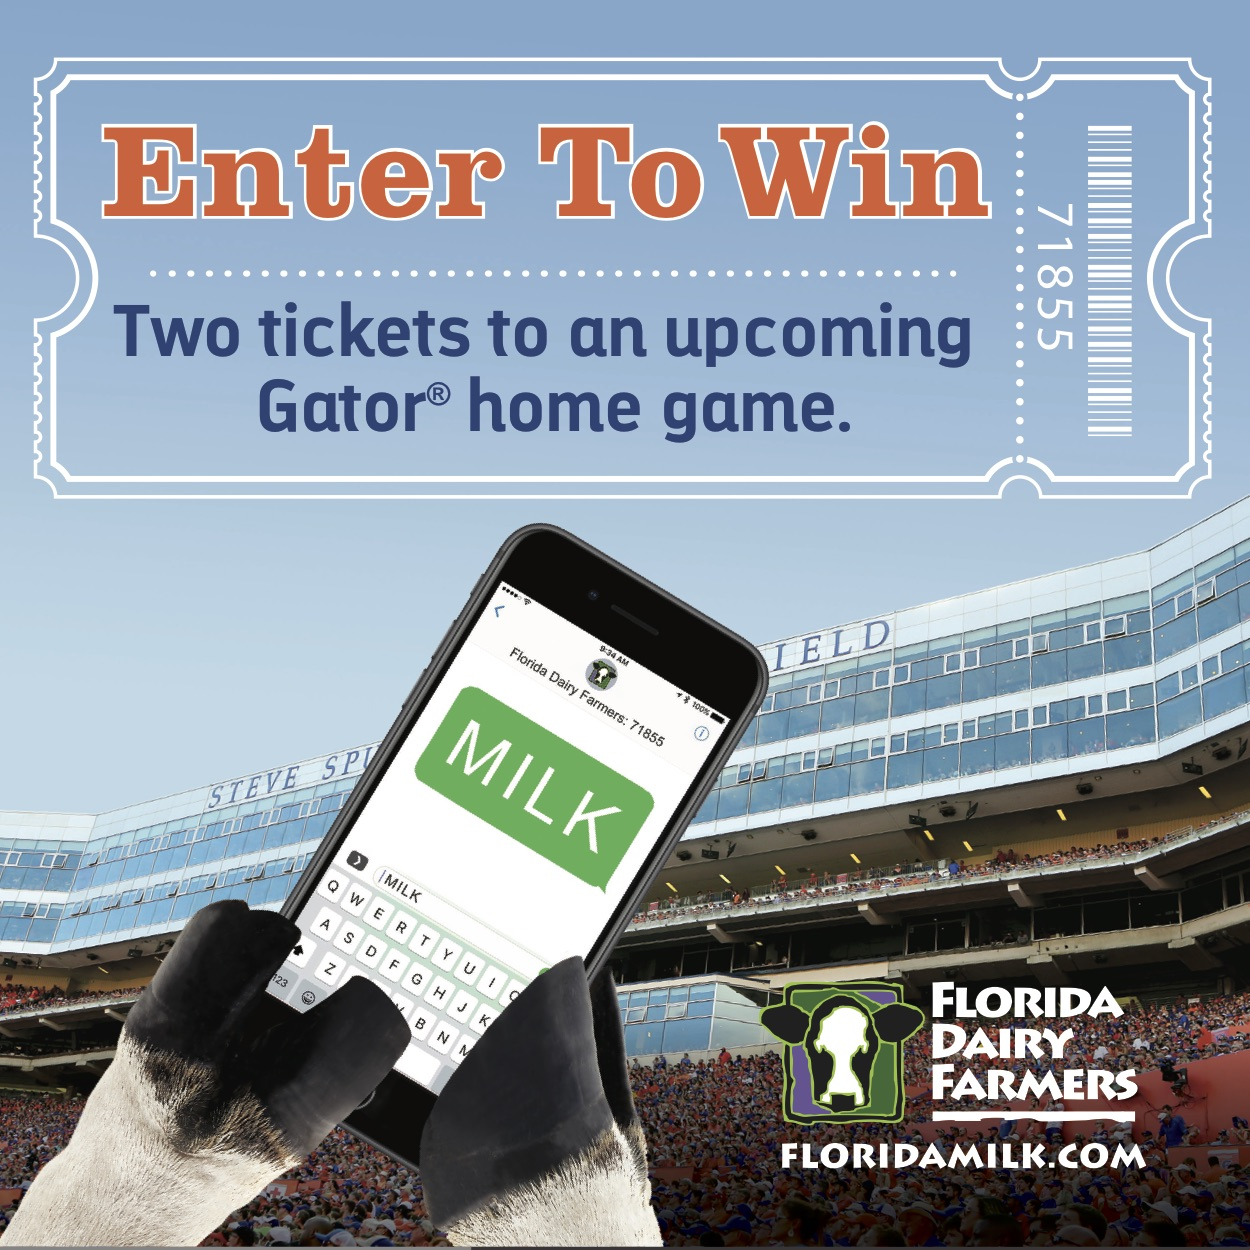 Enter to Win Tickets to a University of Florida Football Game